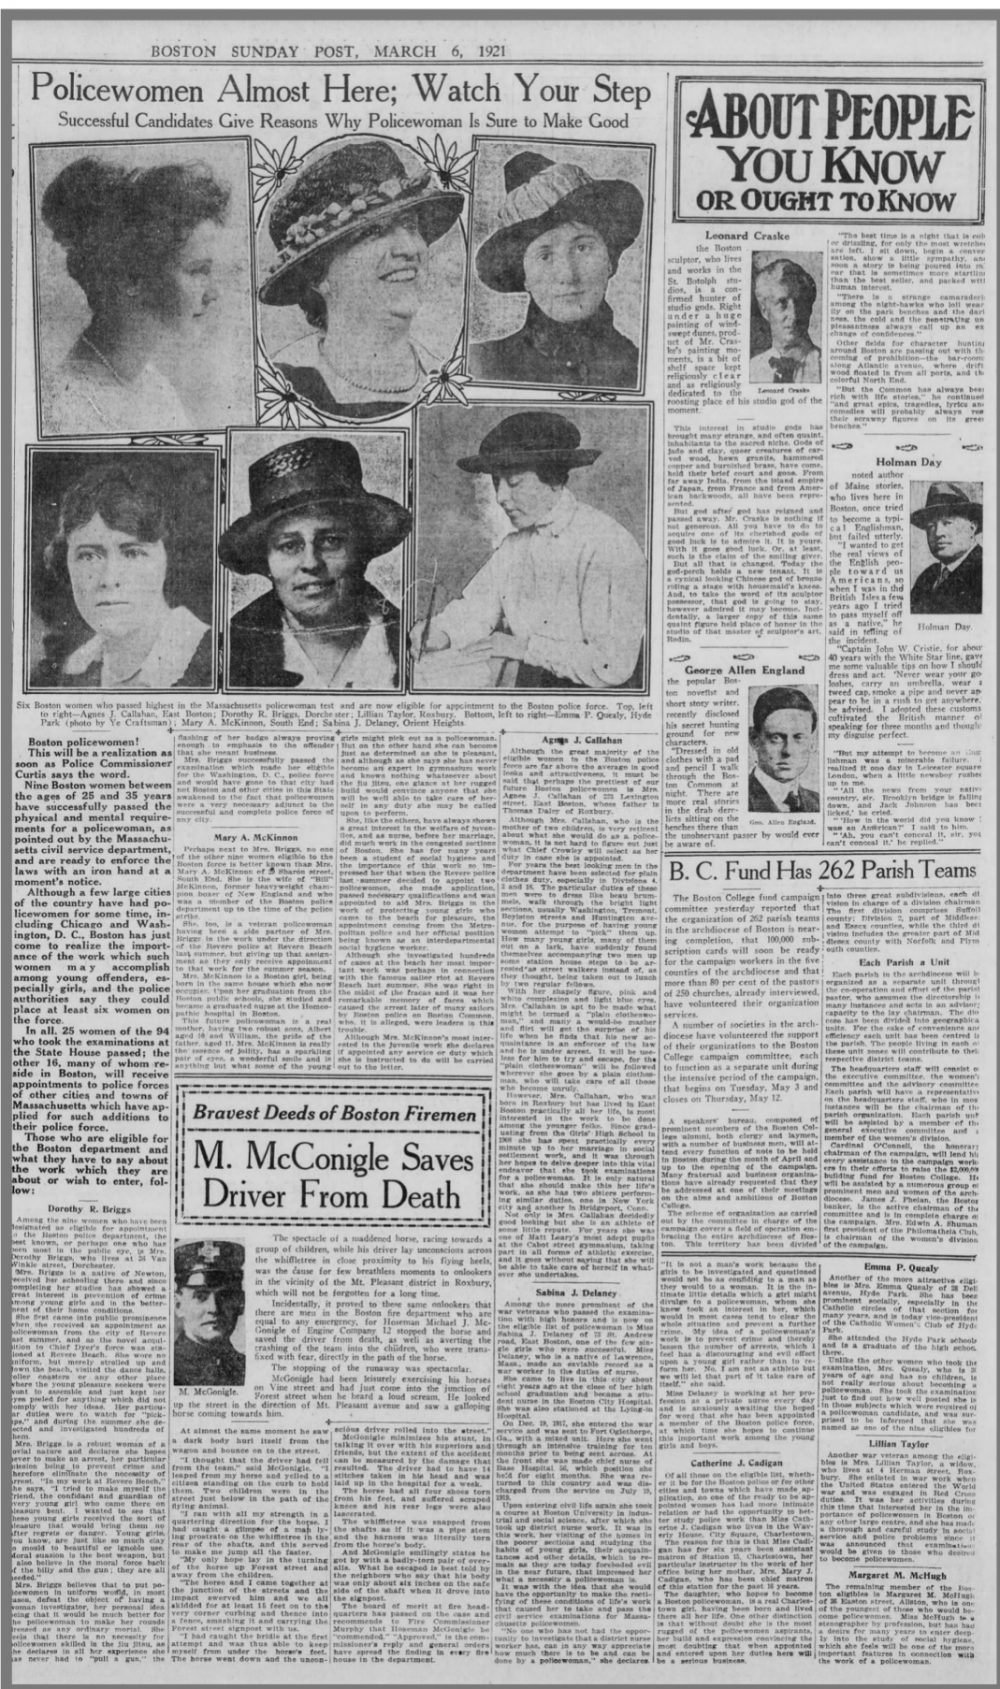 An article about the first female cops in Boston, published in the Boston Post on Sunday, March 6, 1921 under the headline 'Policewomen Almost Here: Watch Your Step.' (Boston Post)